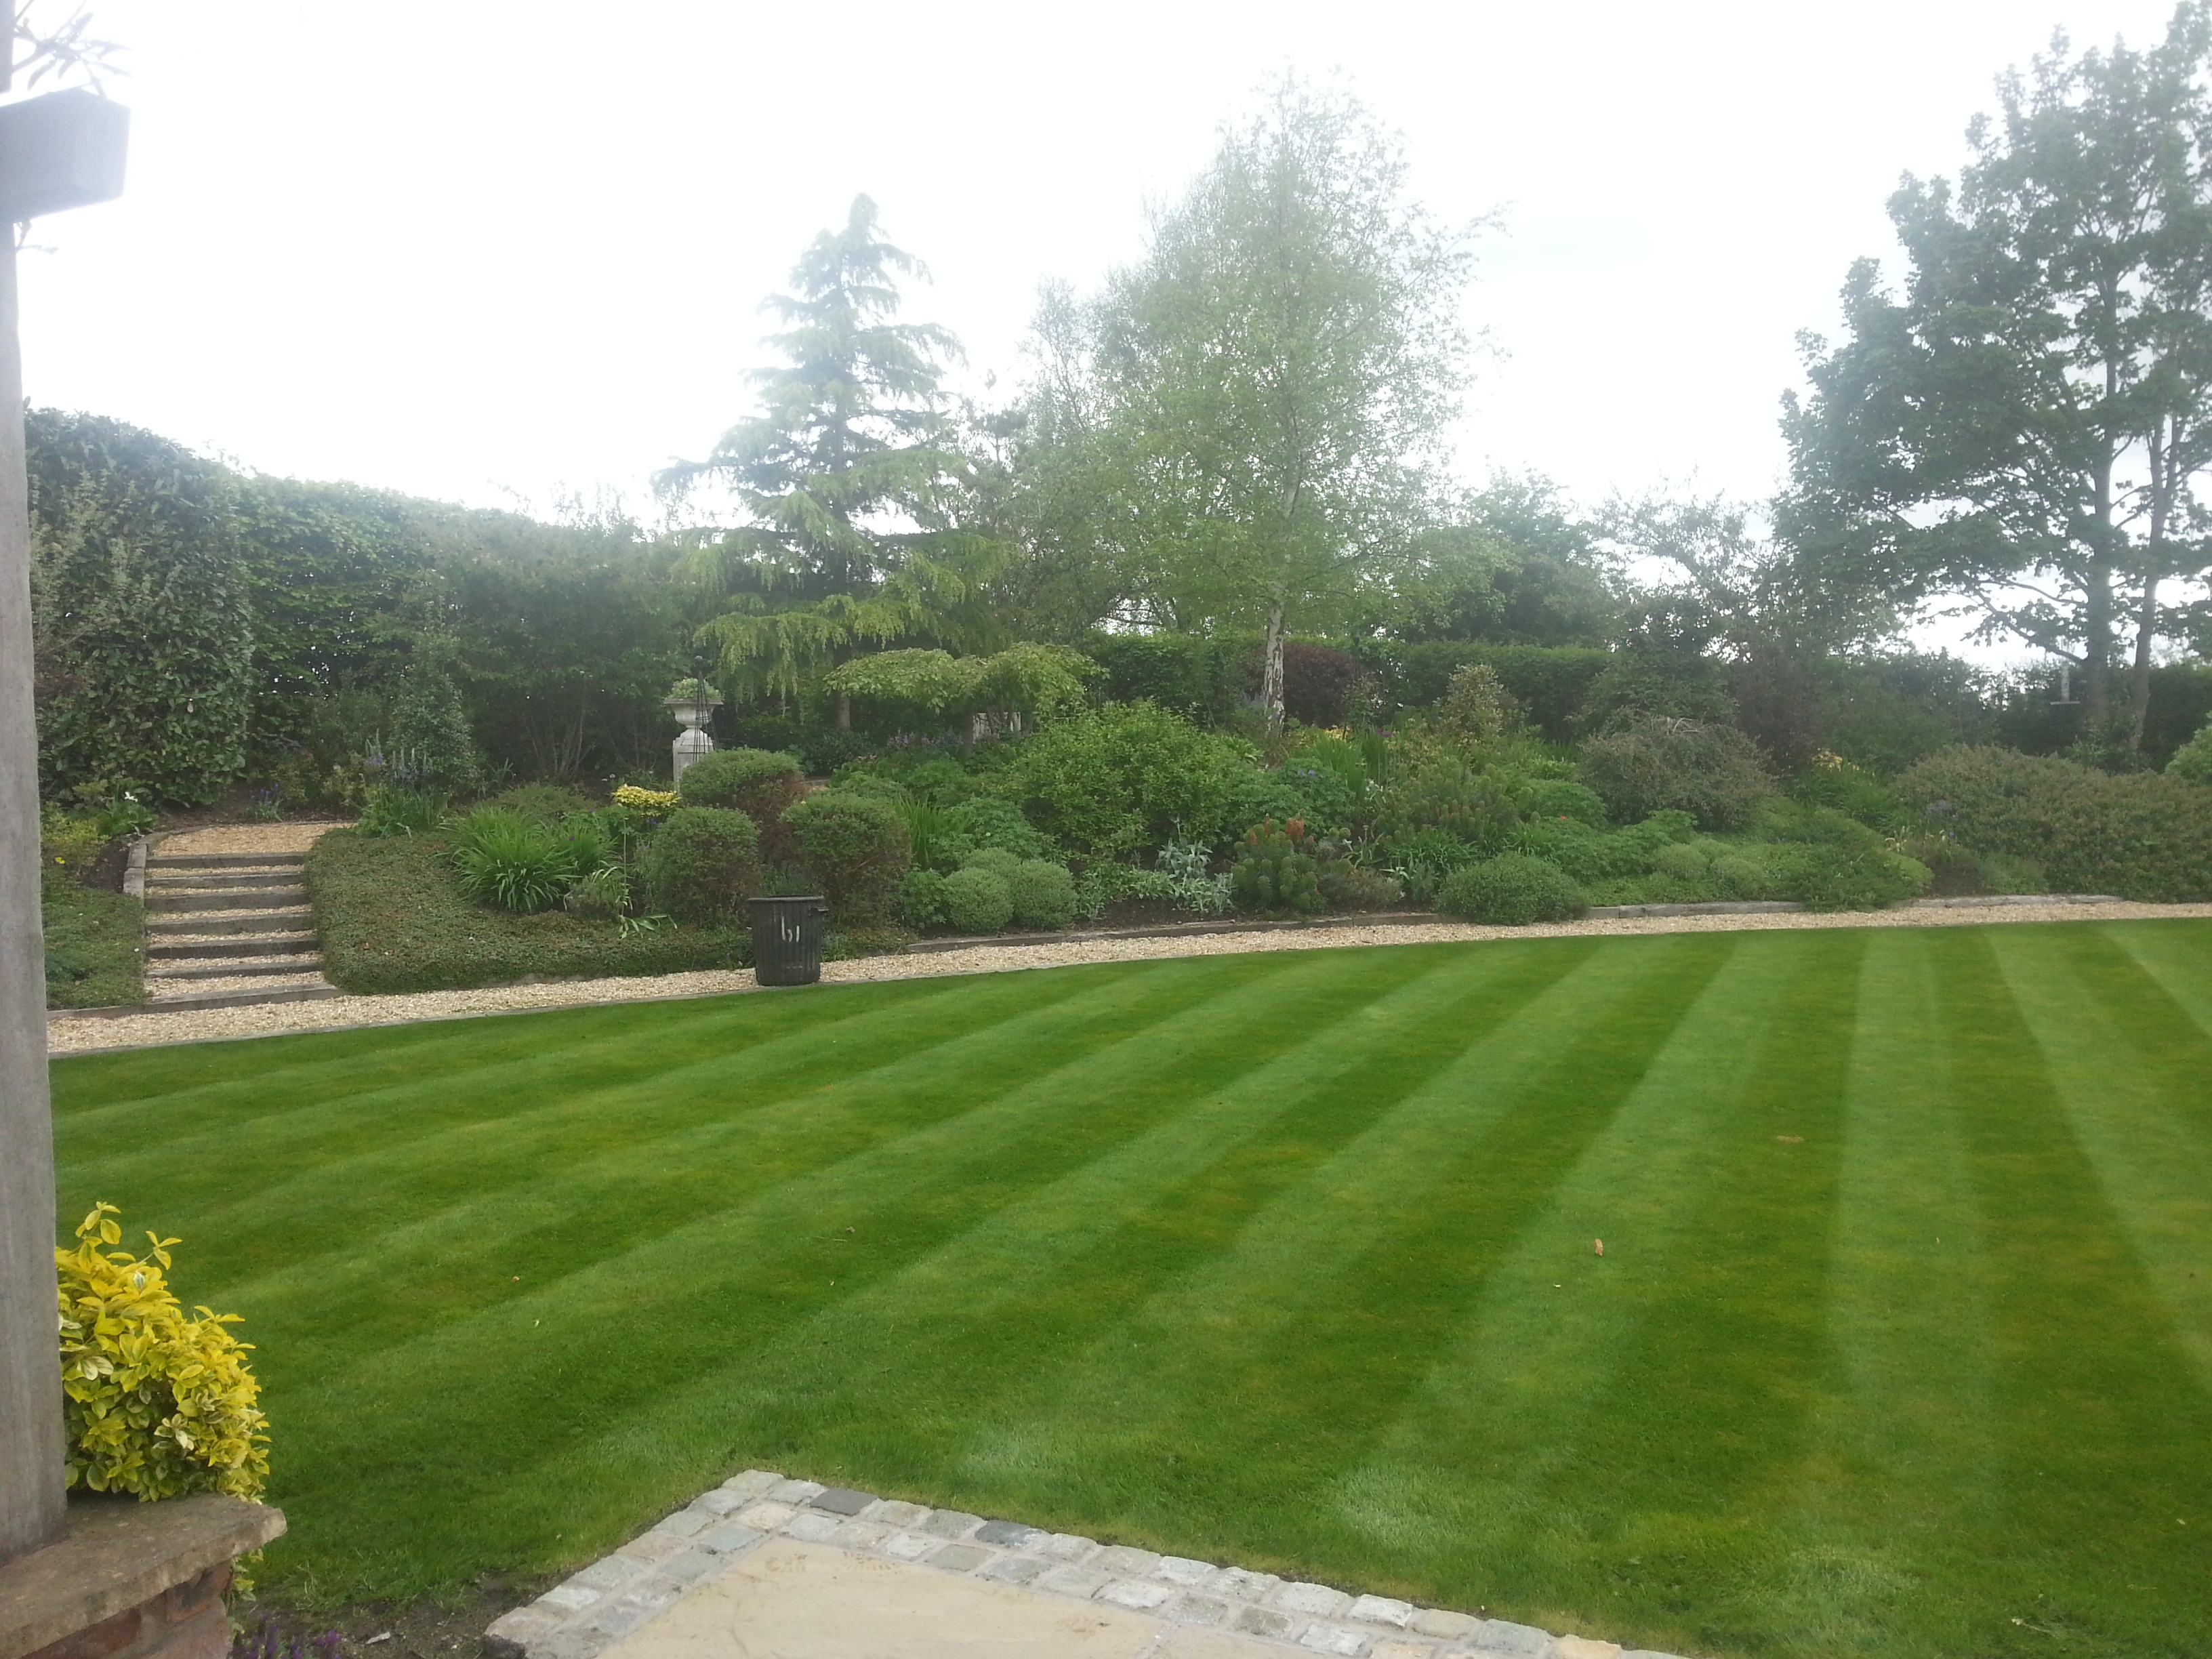 Mowing, Borders, Maintenance, Bogdanski, Alderly Edge 1